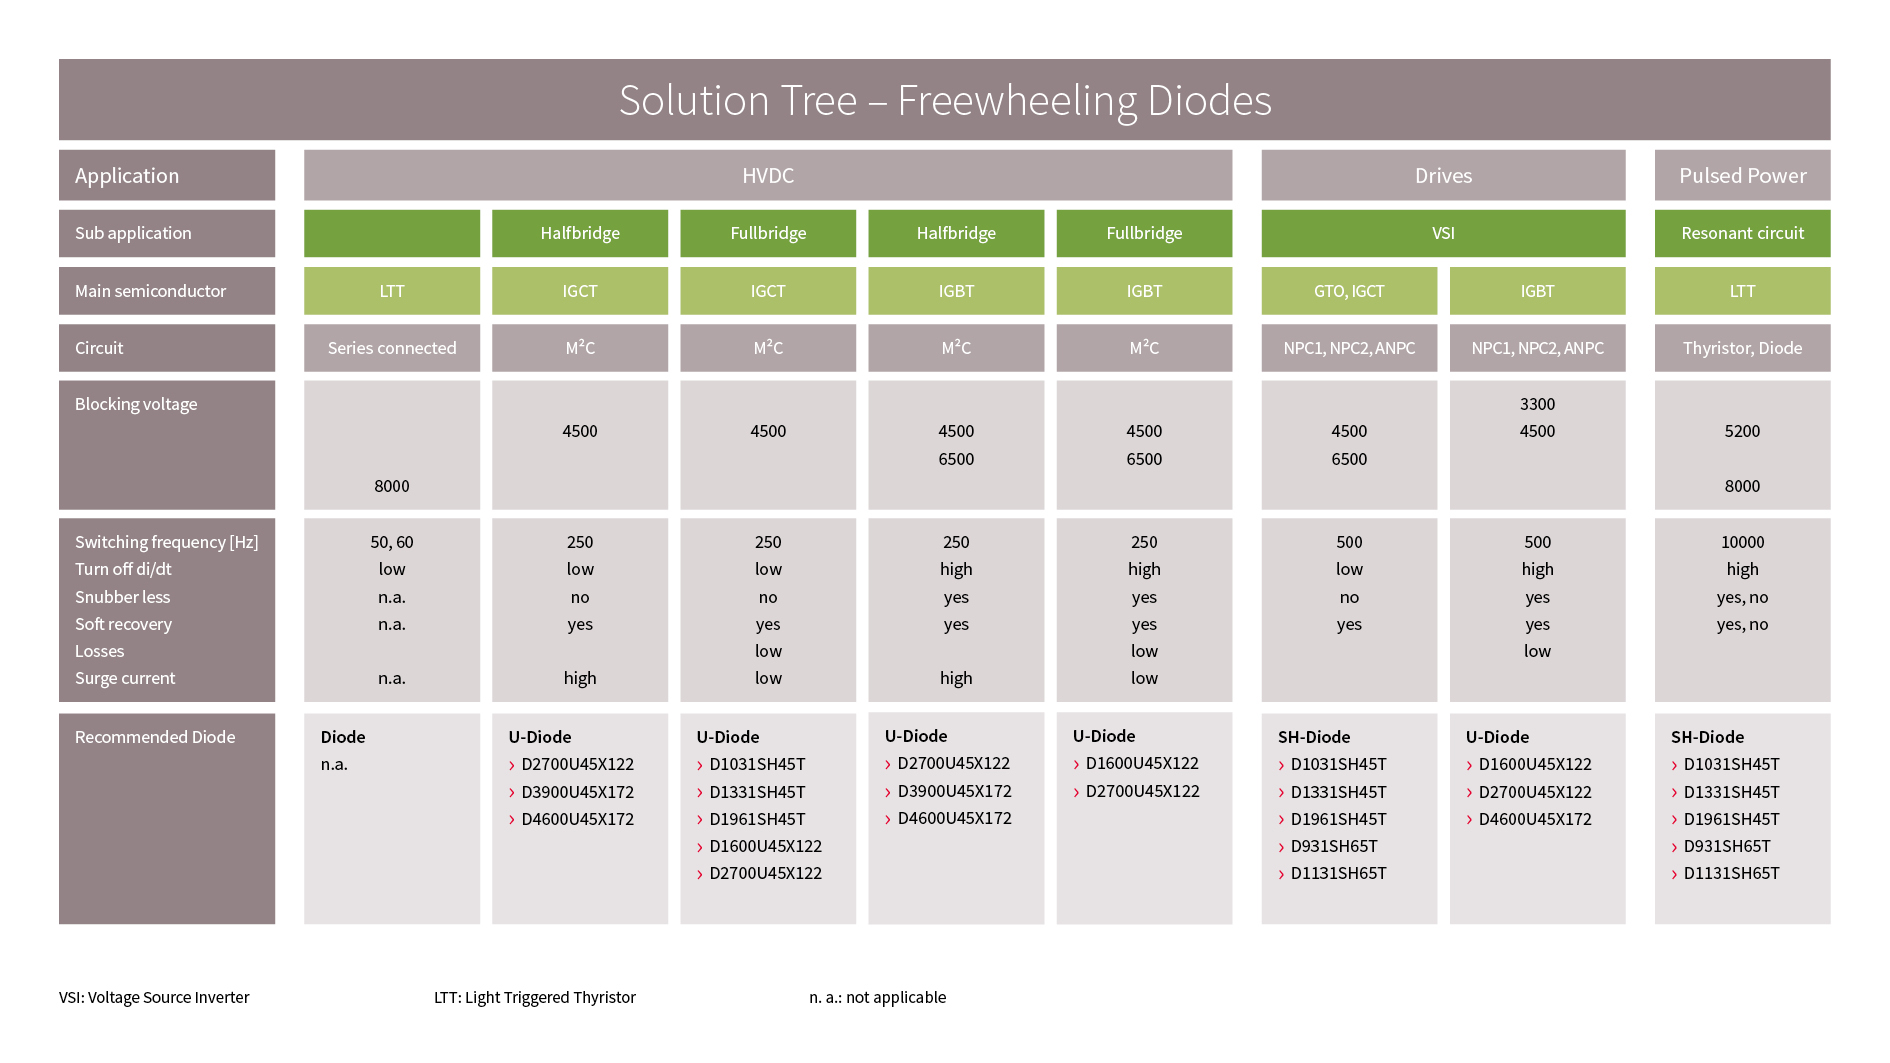 Solution Tree for Freewheeling Diodes